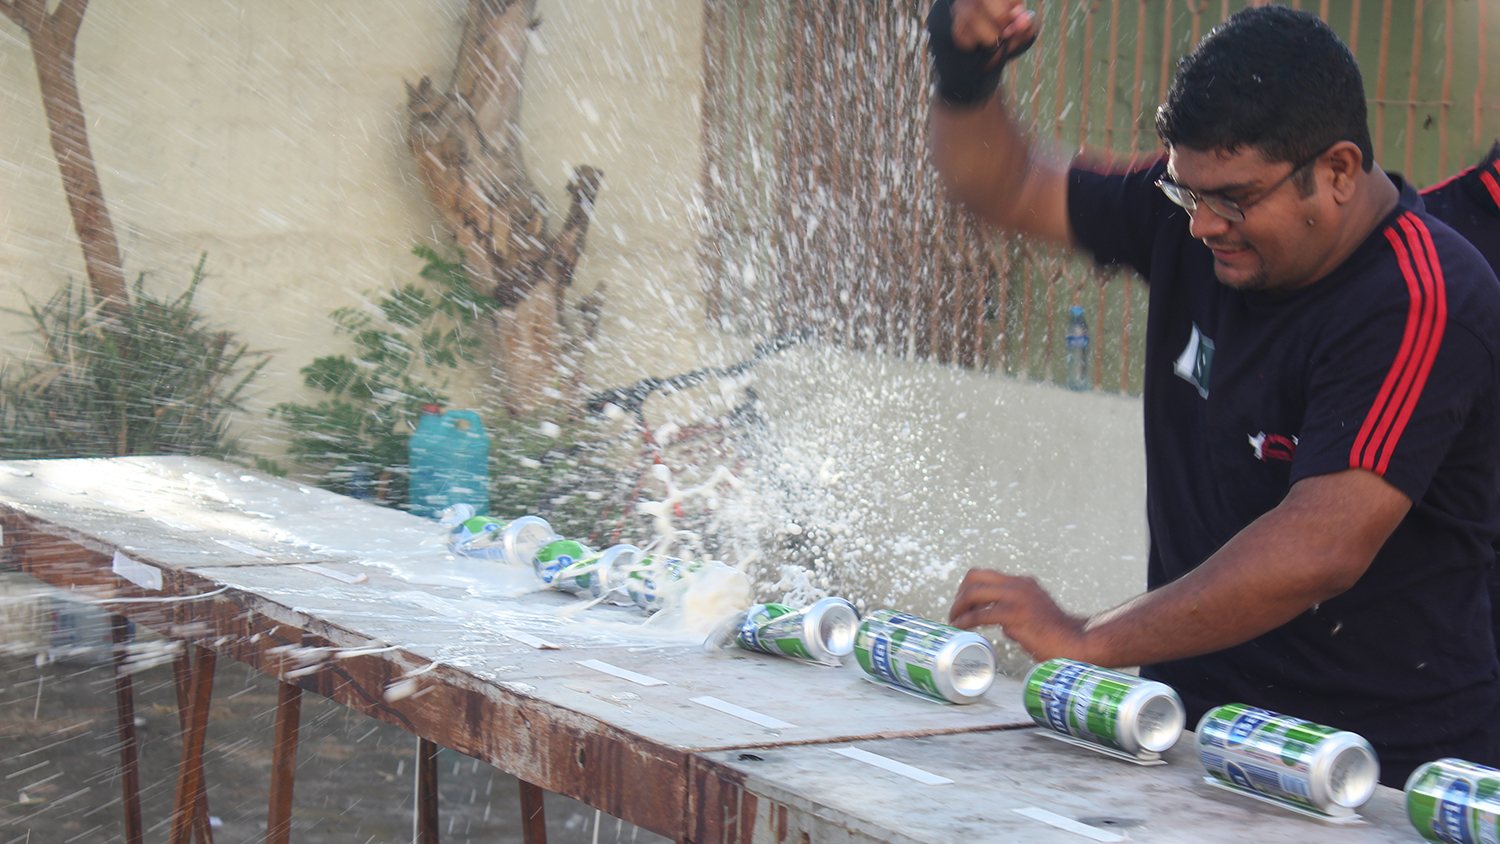 martial artist crushes cans and breaks world record